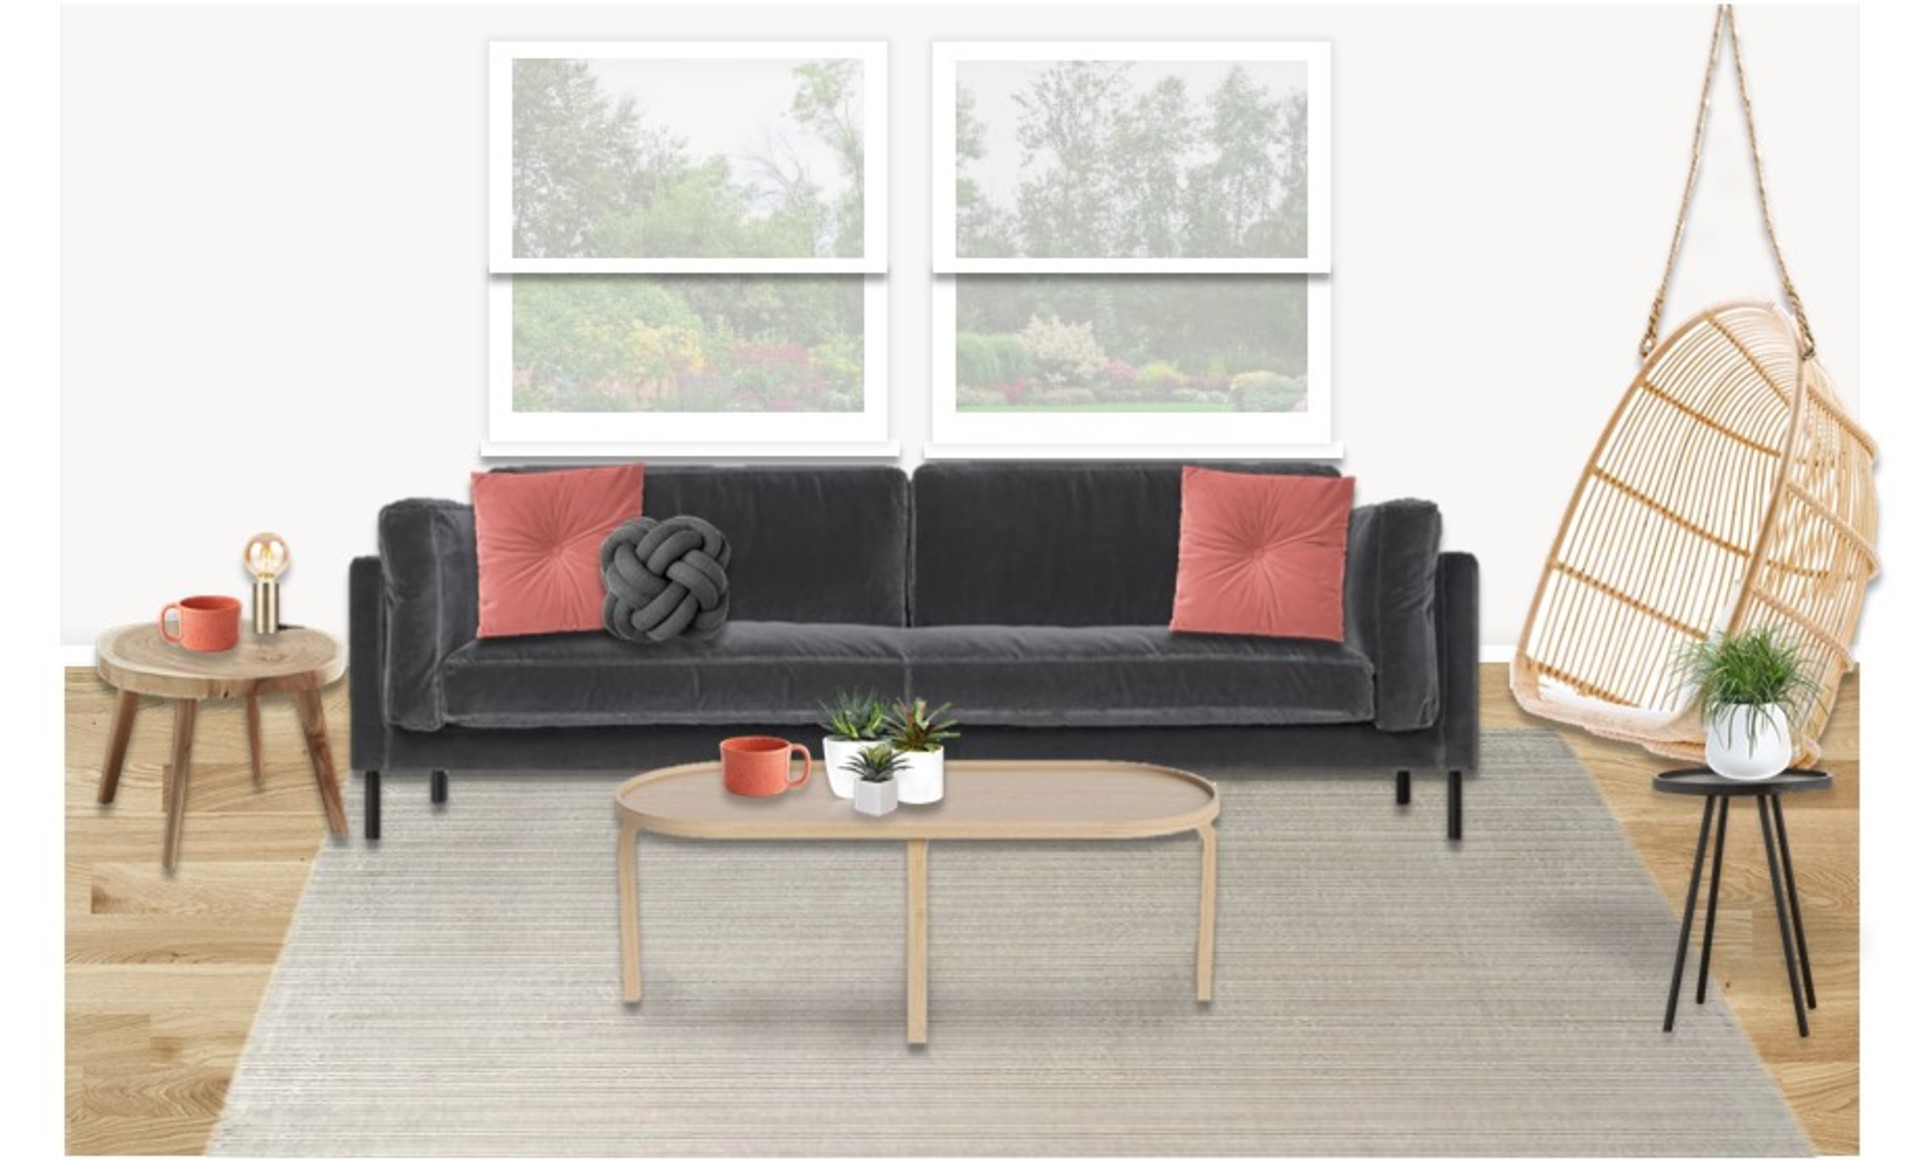 Velvet sofa and organic furniture in an on trend living room with coral and orange accents